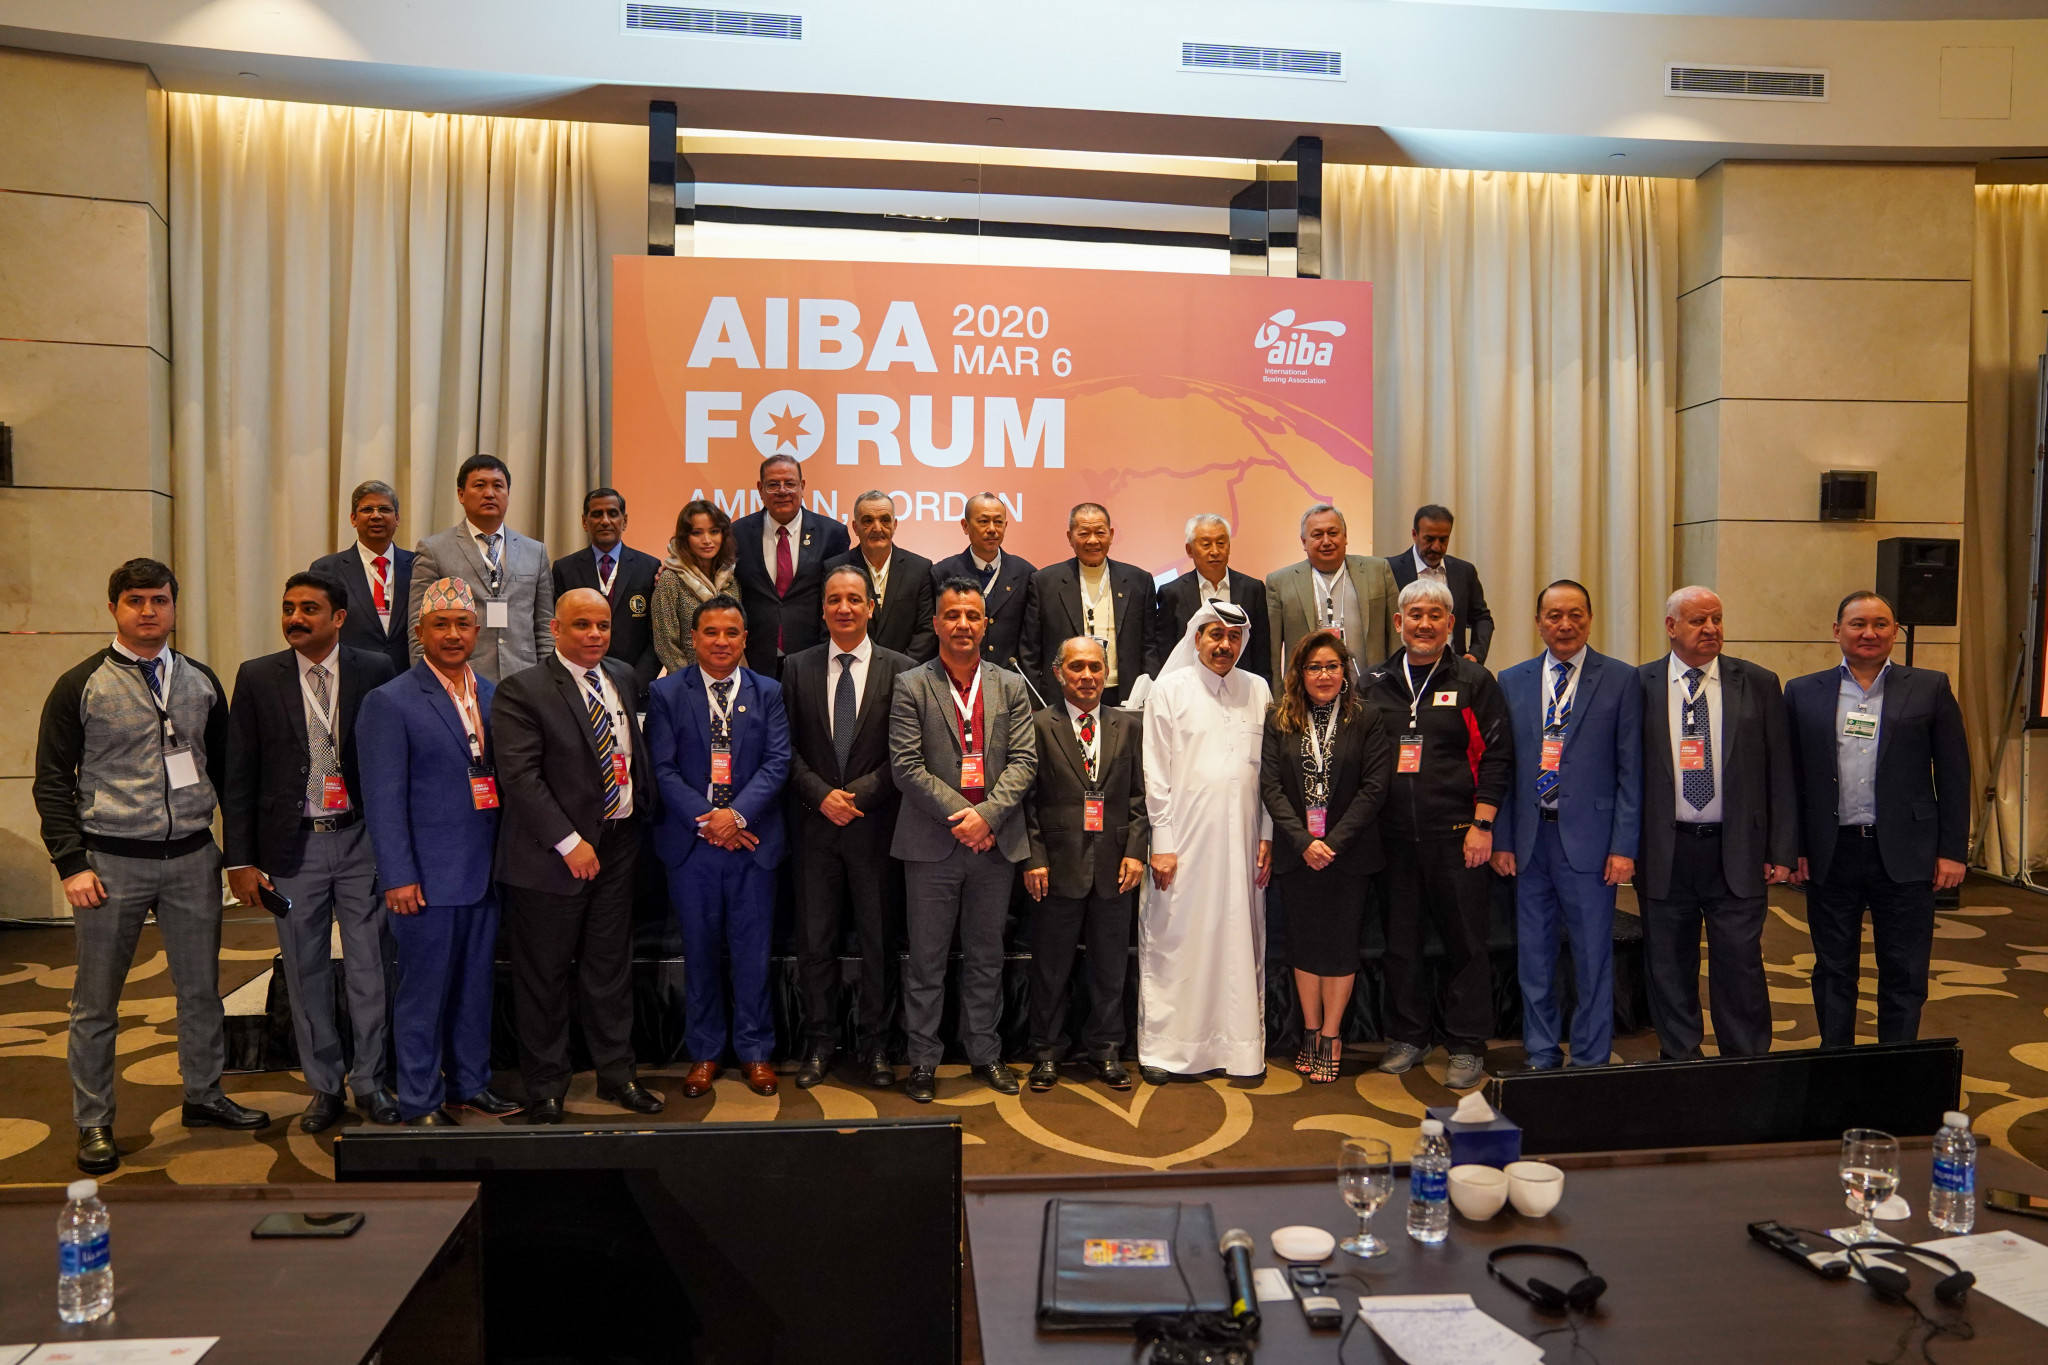 The AIBA Asian Forum was held today in Amman ©AIBA